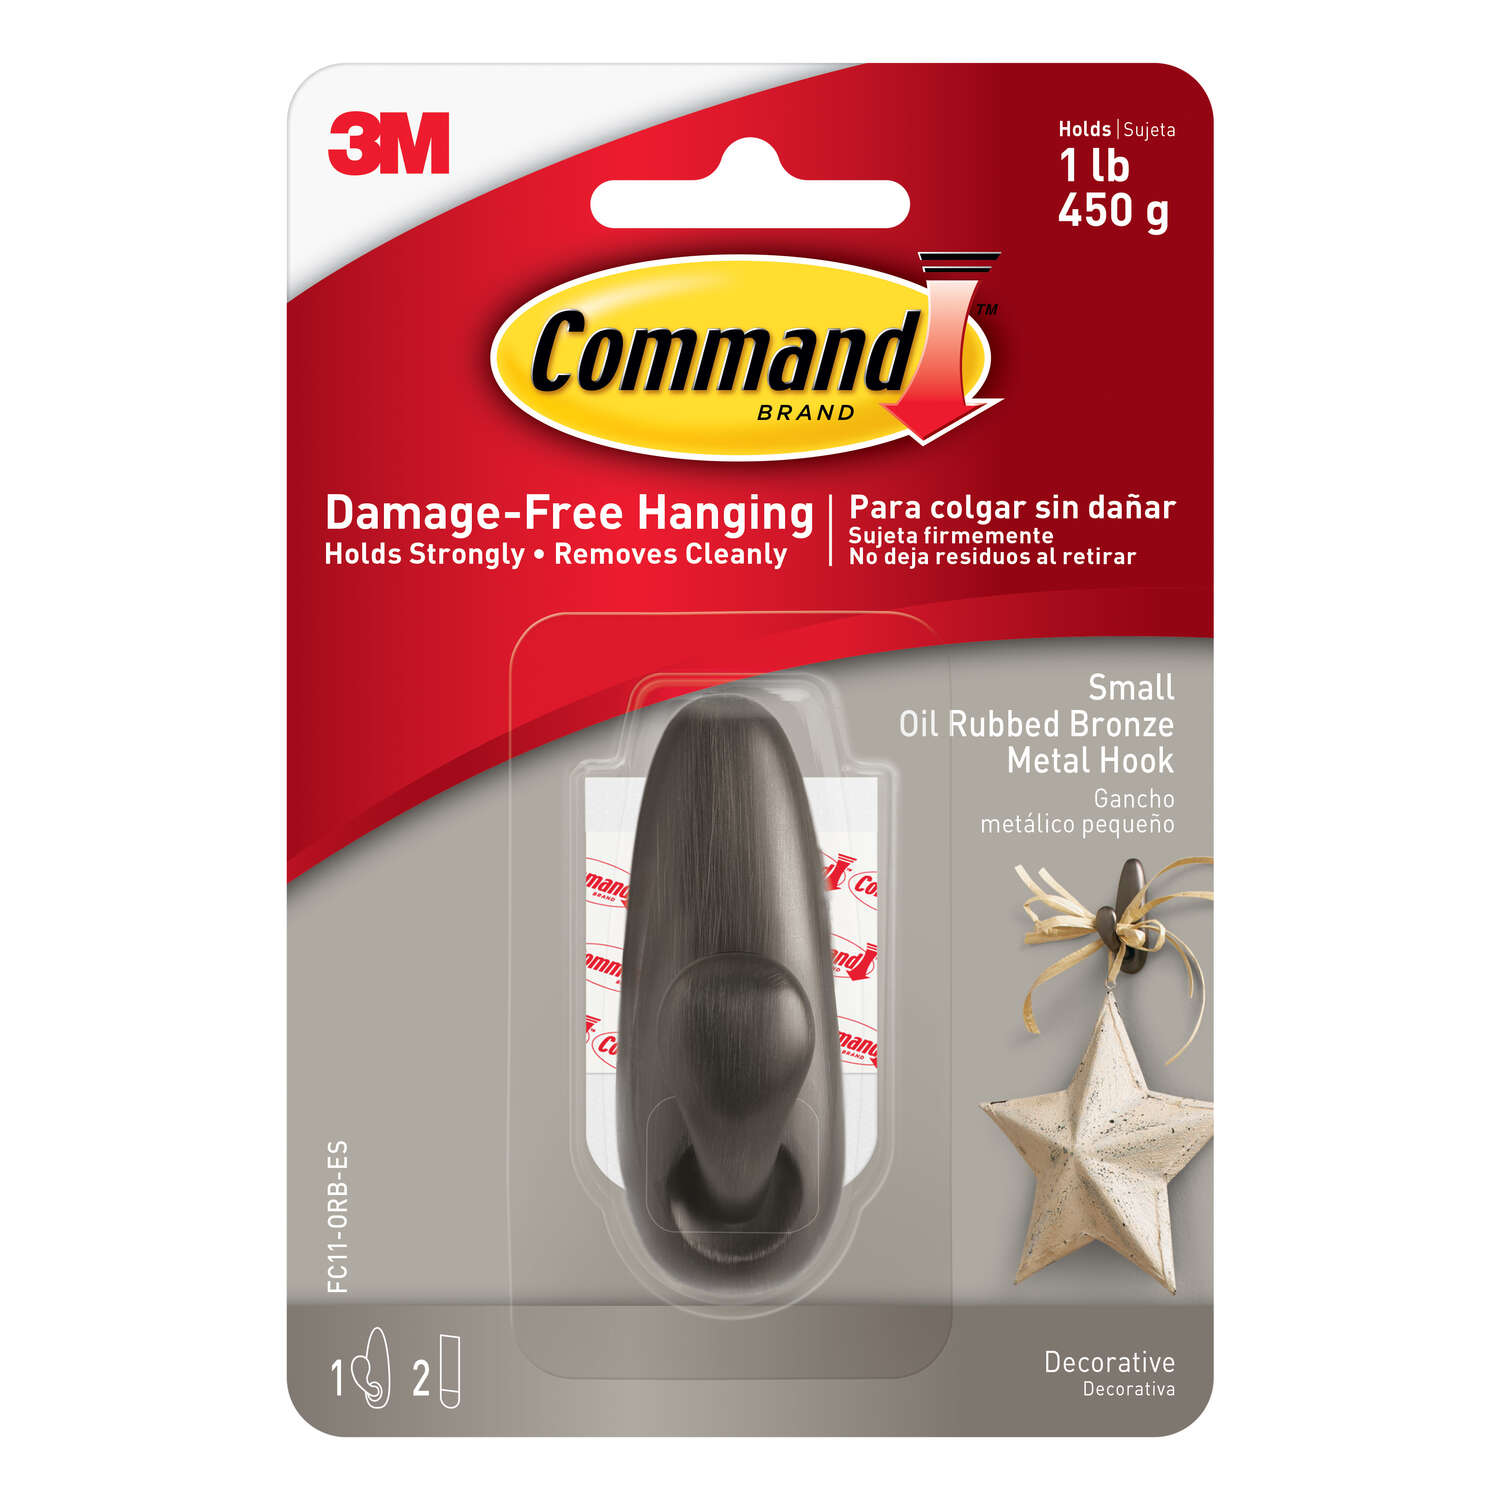 3M  Command  2-5/8 in. L Oil Rubbed Bronze  Metal  Small  Coat/Hat Hook  1 lb. 1 pk Forever Classic